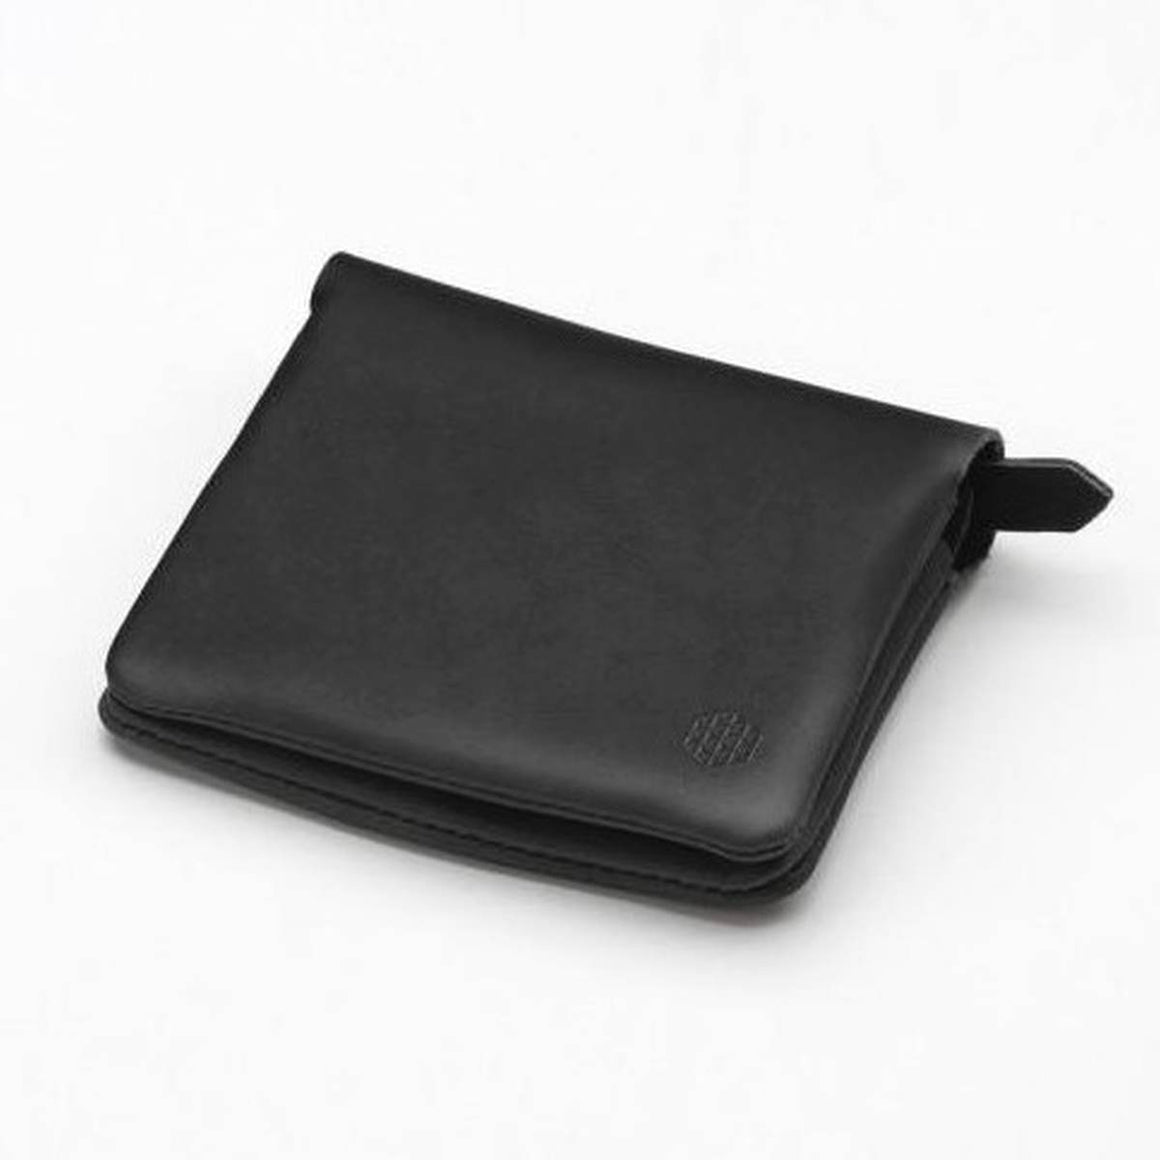 Wallet | Fold | Black Leather | Small